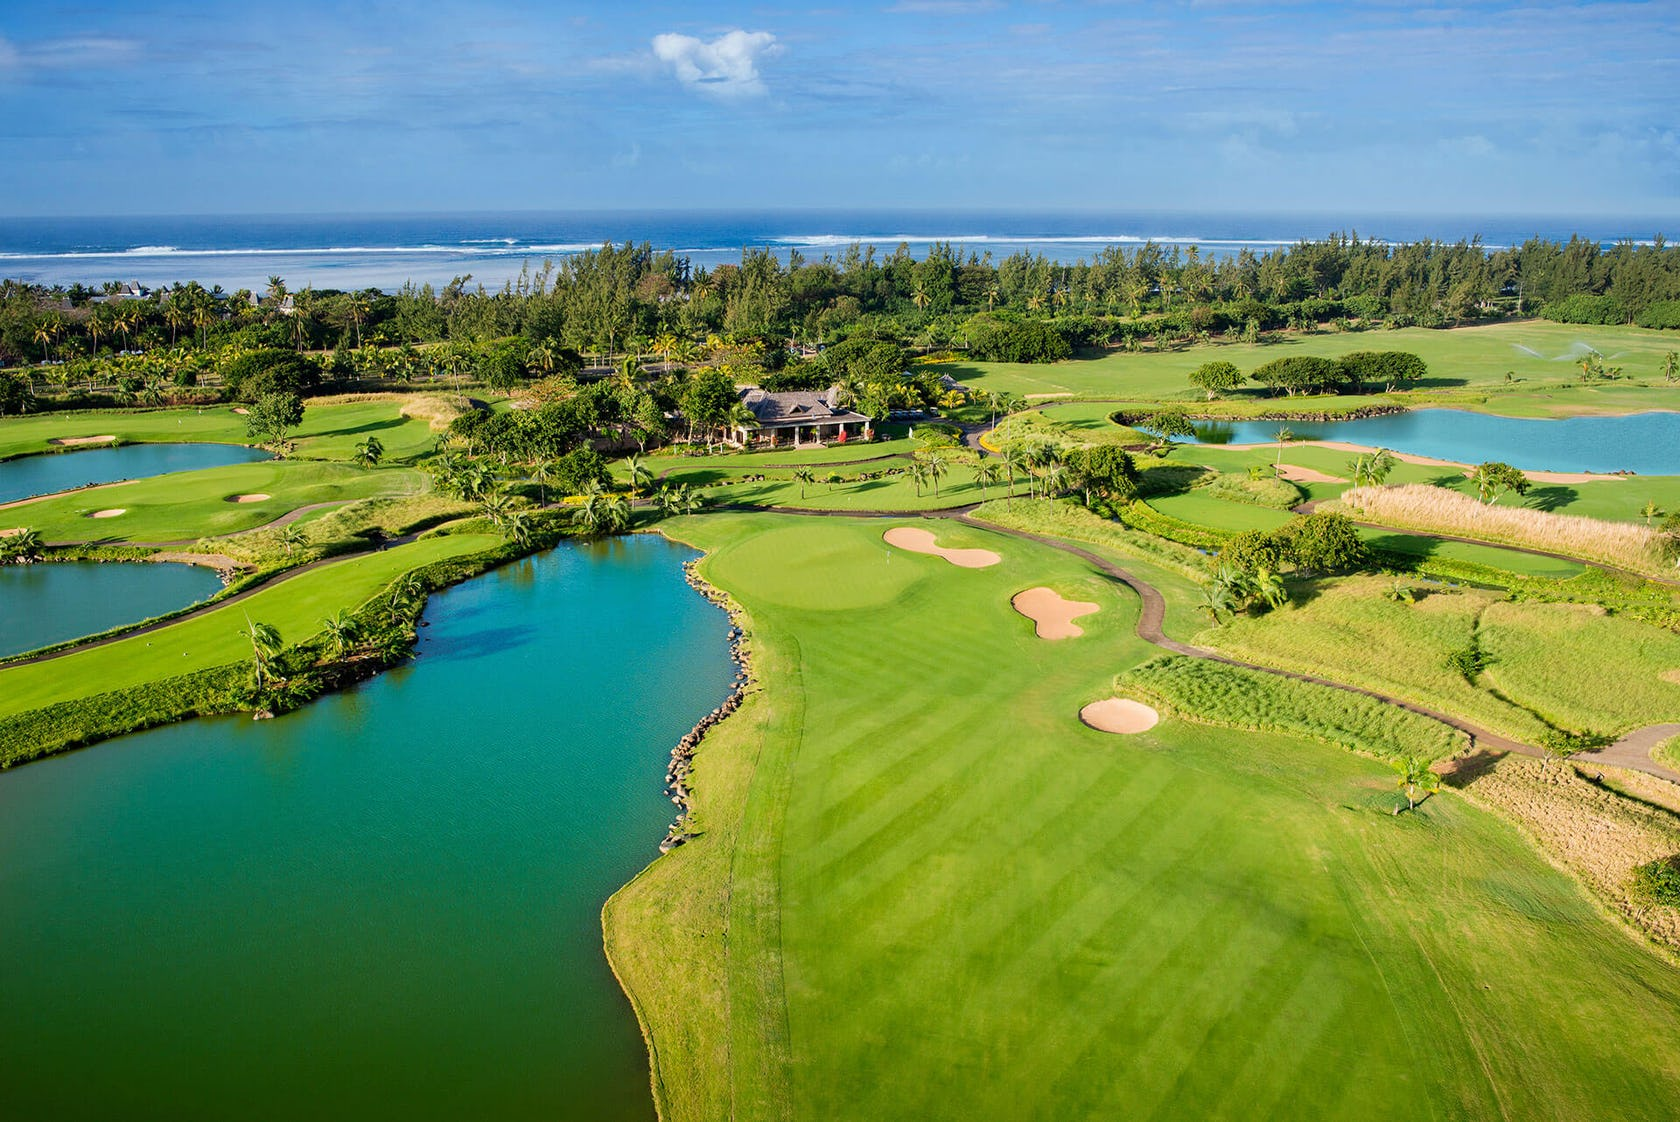 Heritage Bel Ombre, an incredible domaine in the South of Mauritius